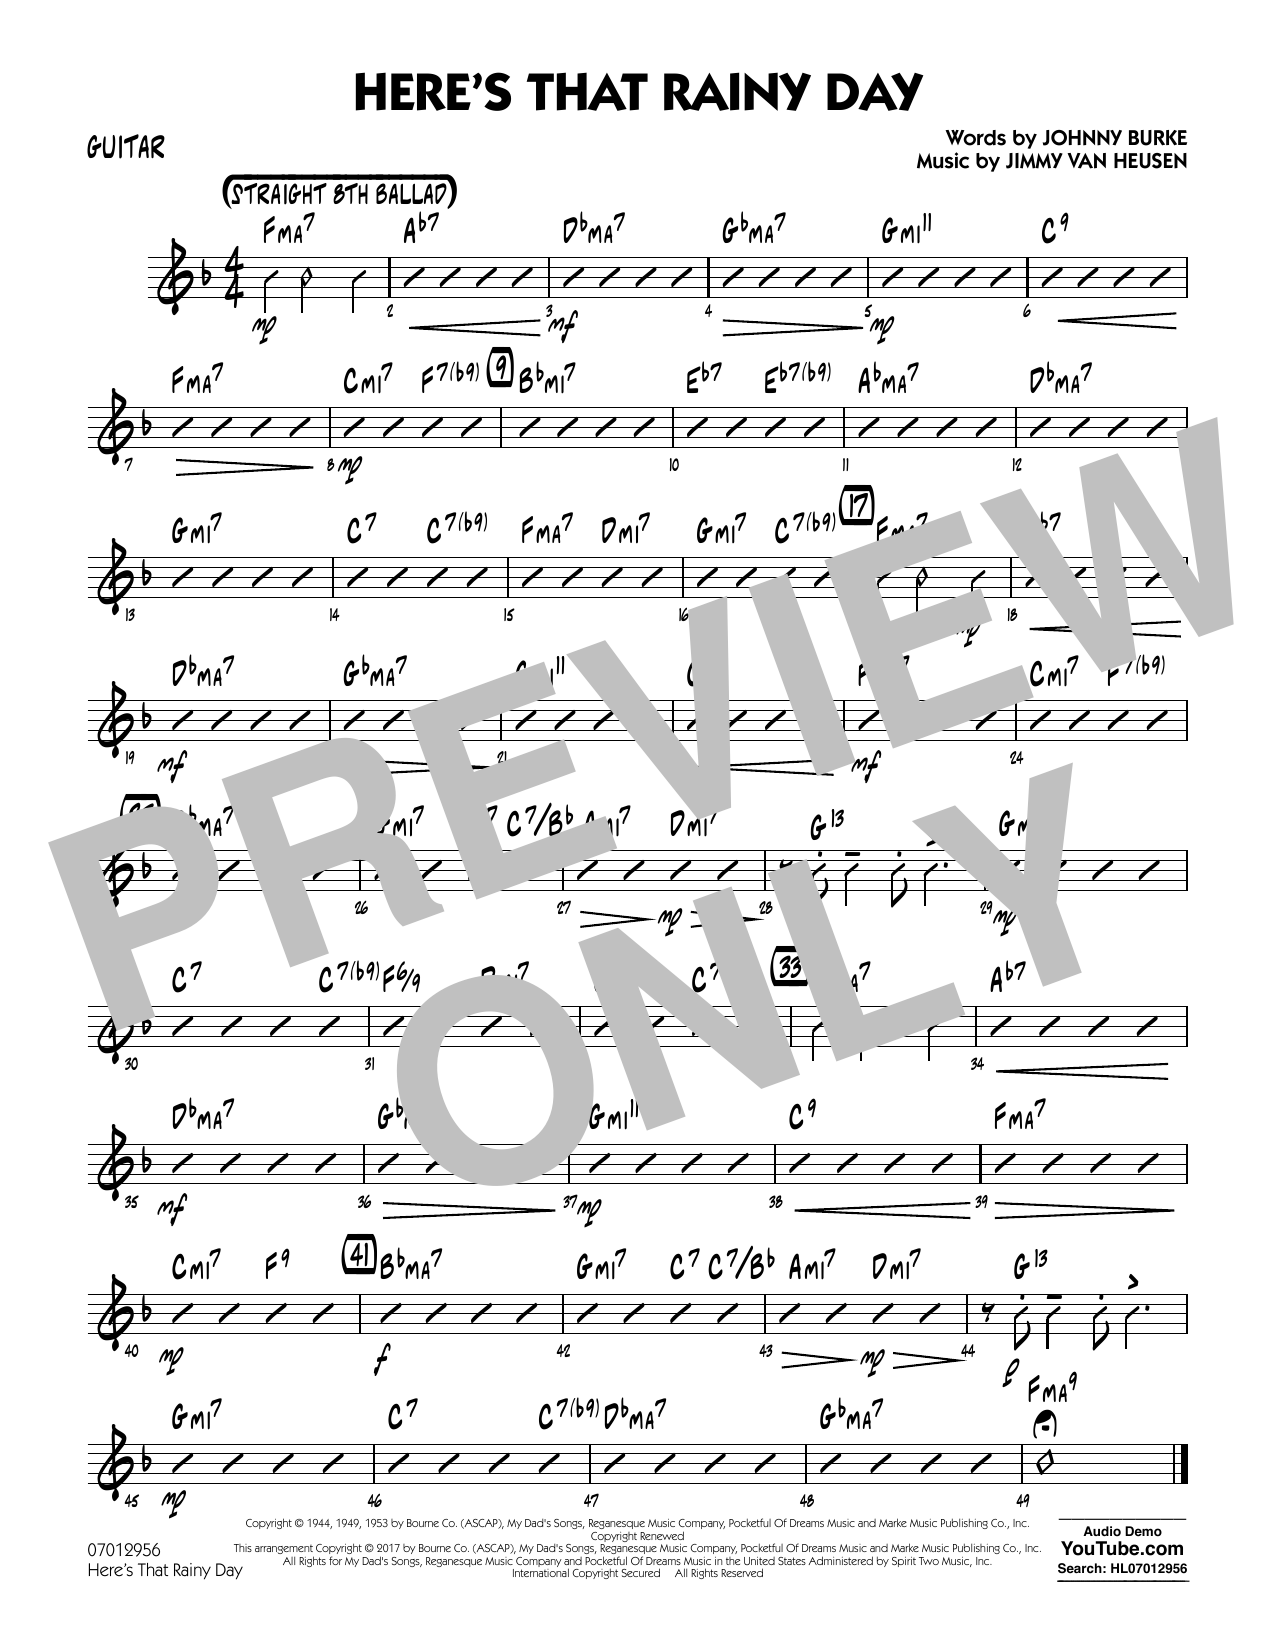 Rick Stitzel Here's That Rainy Day - Guitar sheet music notes and chords. Download Printable PDF.